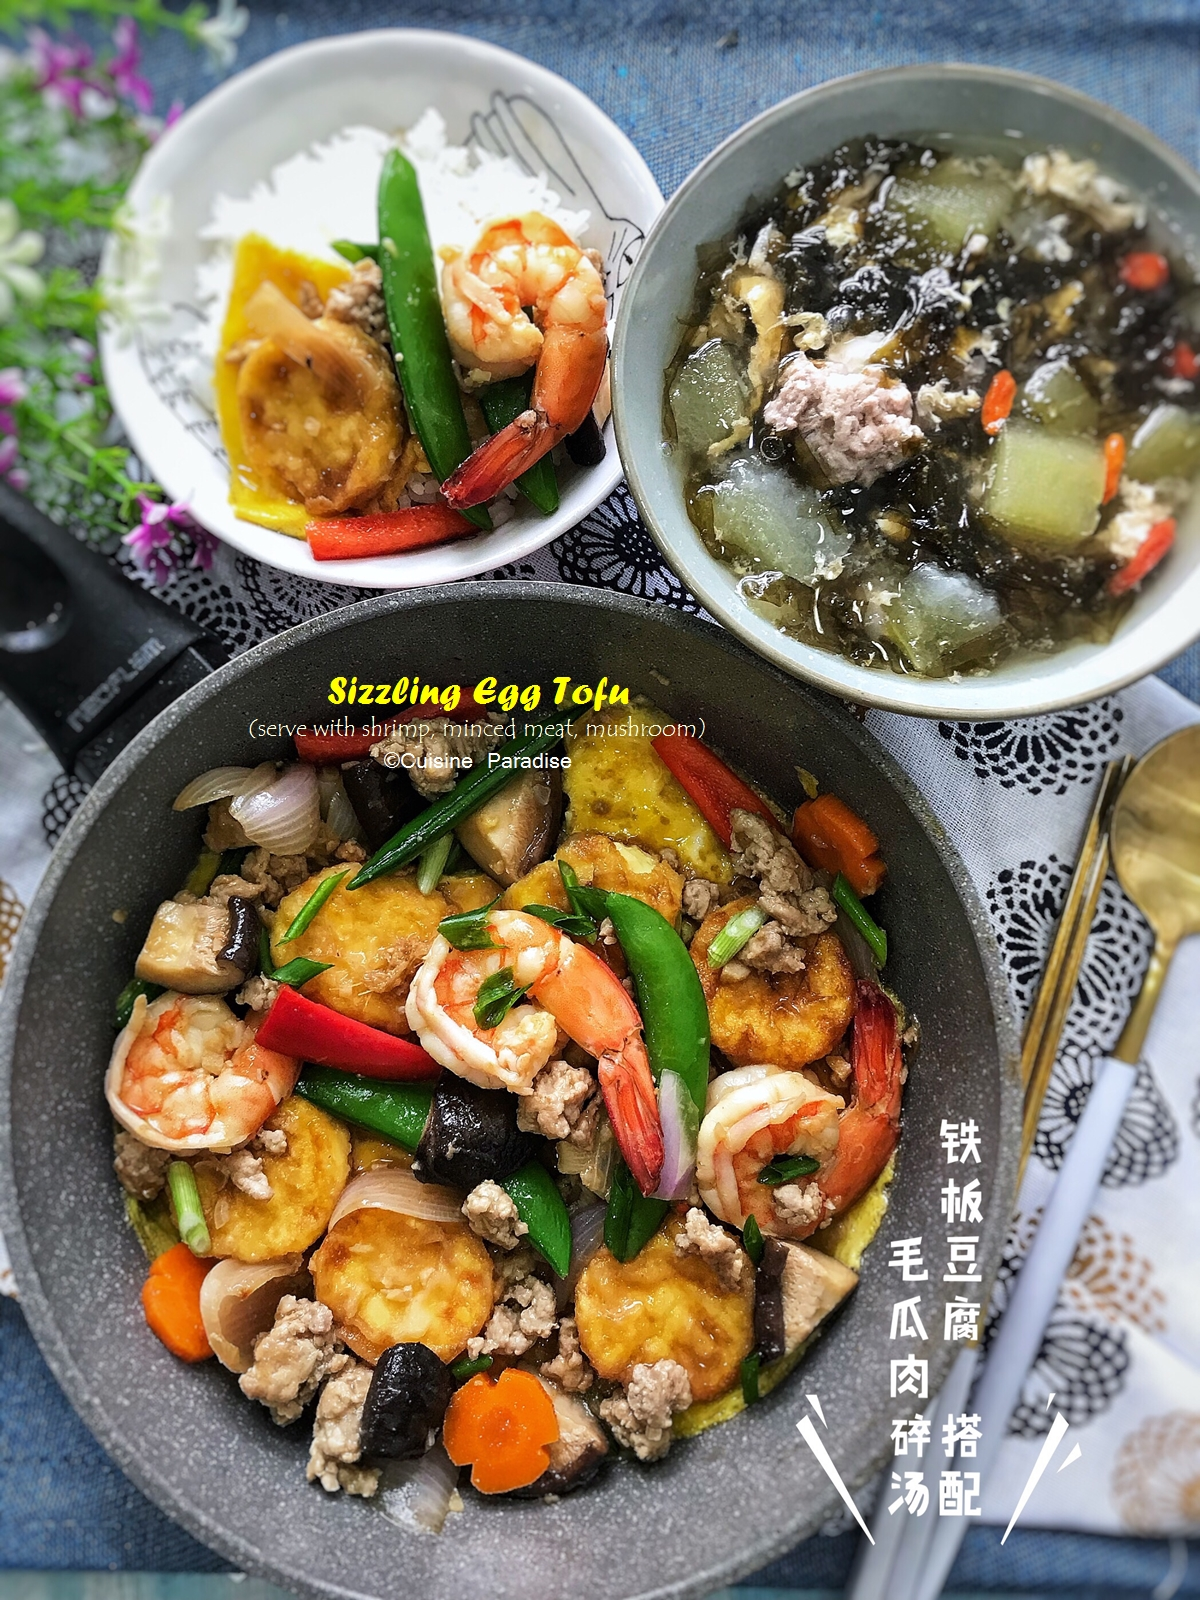 Cuisine paradise singapore food blog recipes reviews and travel recipes video 3 one pan recipes for easy weeknight meals forumfinder Choice Image